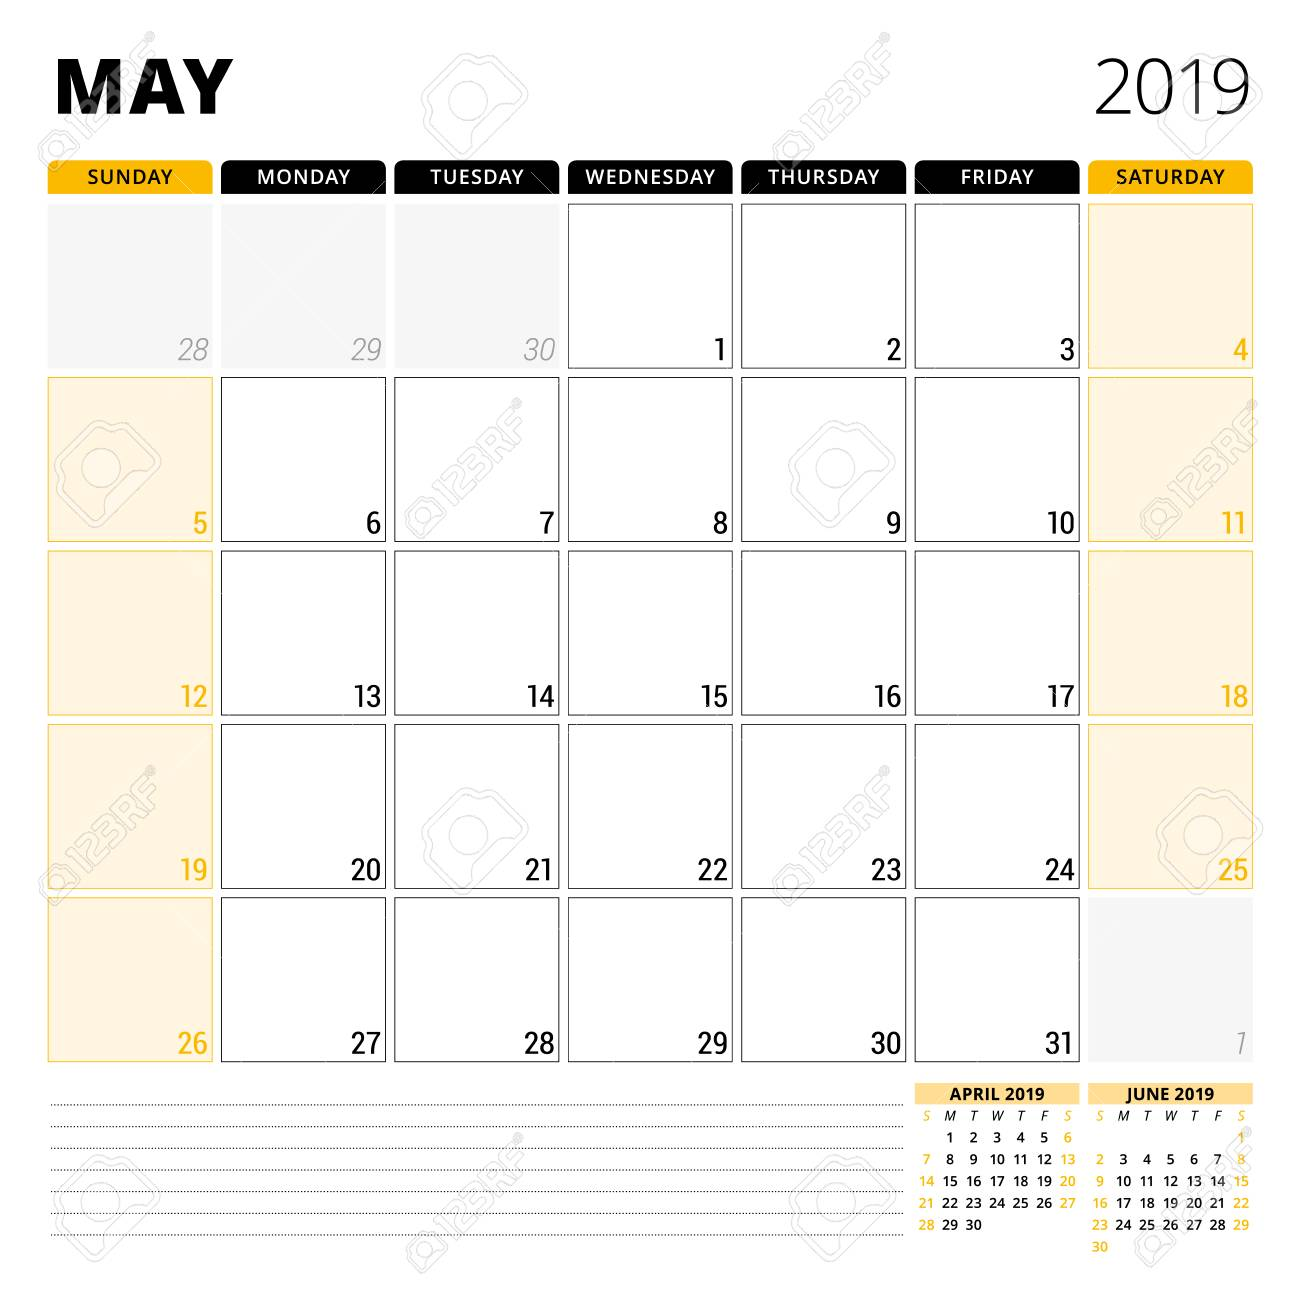 Calendar planner for May 2019  Stationery design template  Week